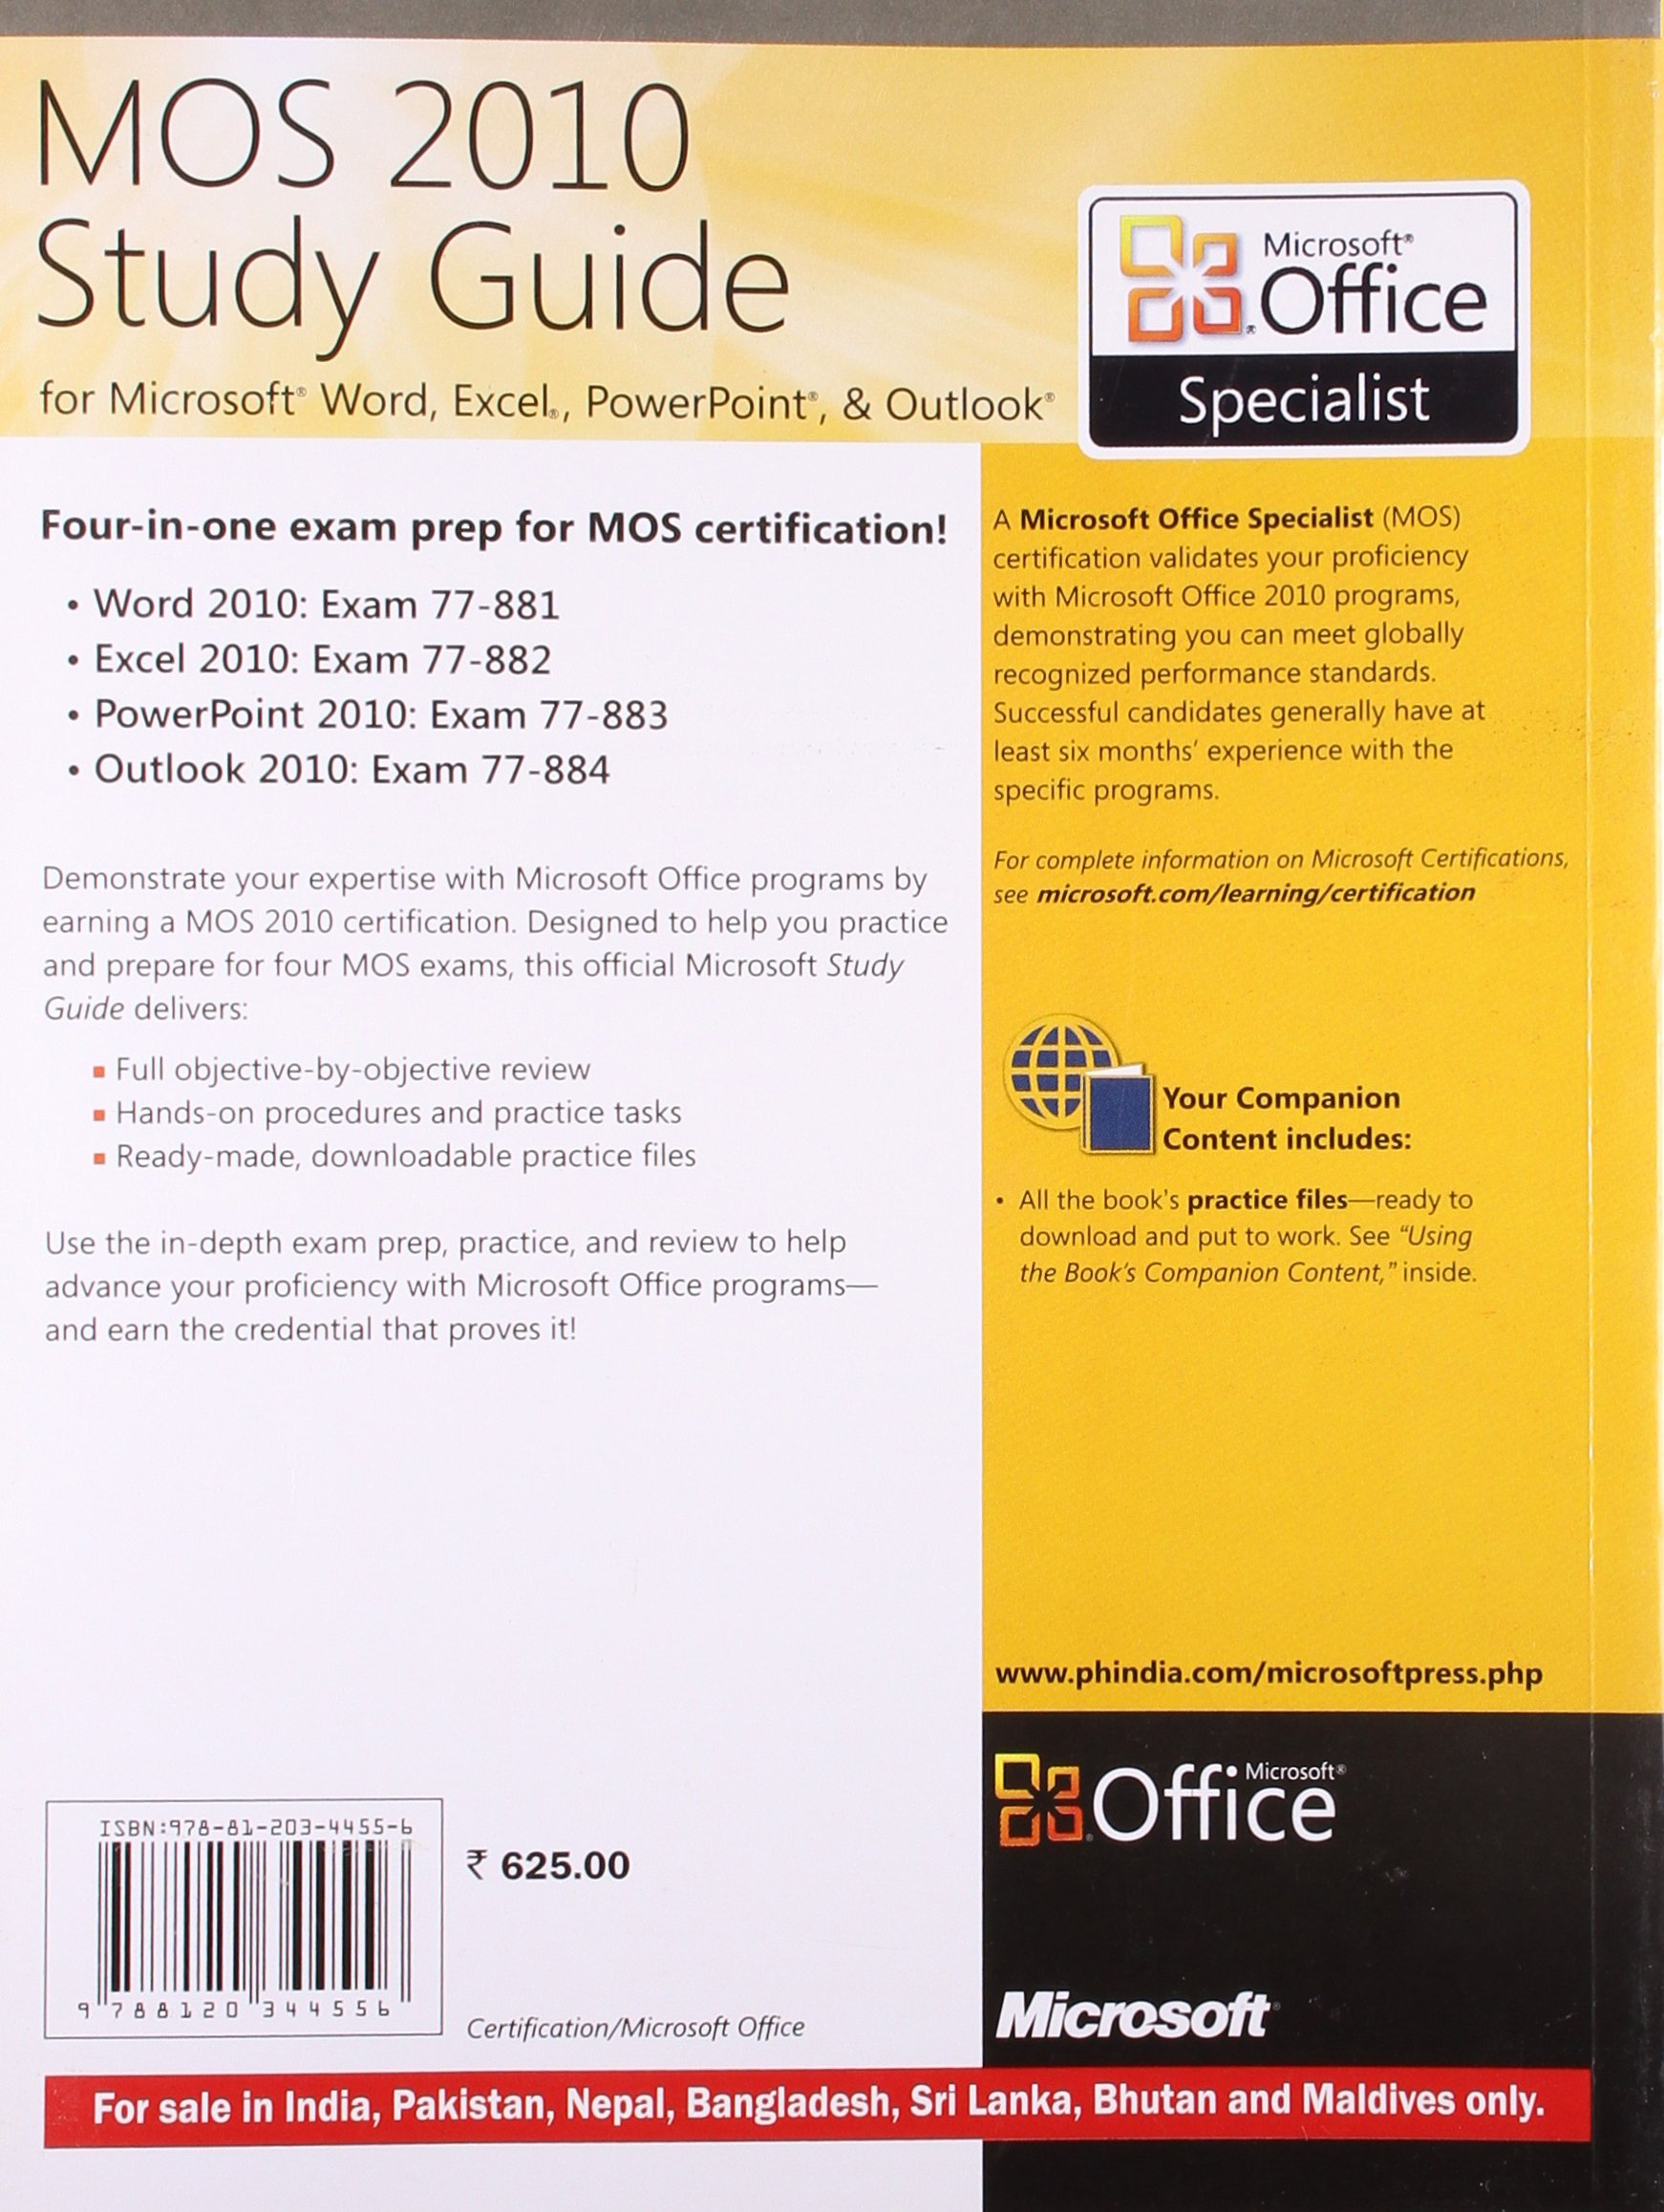 Buy Mos 2010 Study Guide For Microsoft Word Excel Powerpoint And